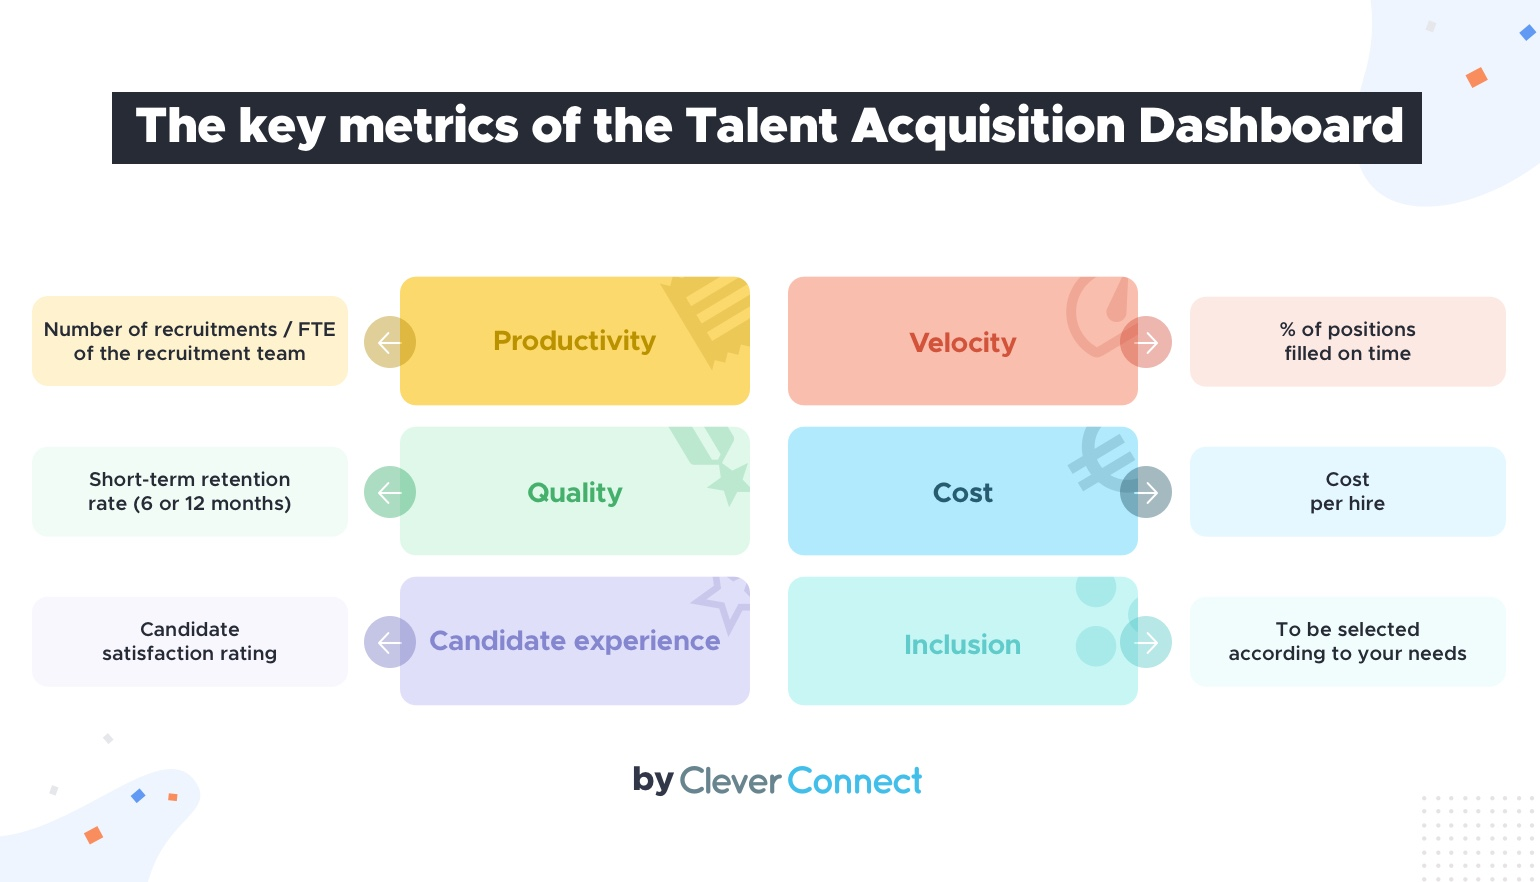 The key metrics of the Talent Acquisition Dashboard